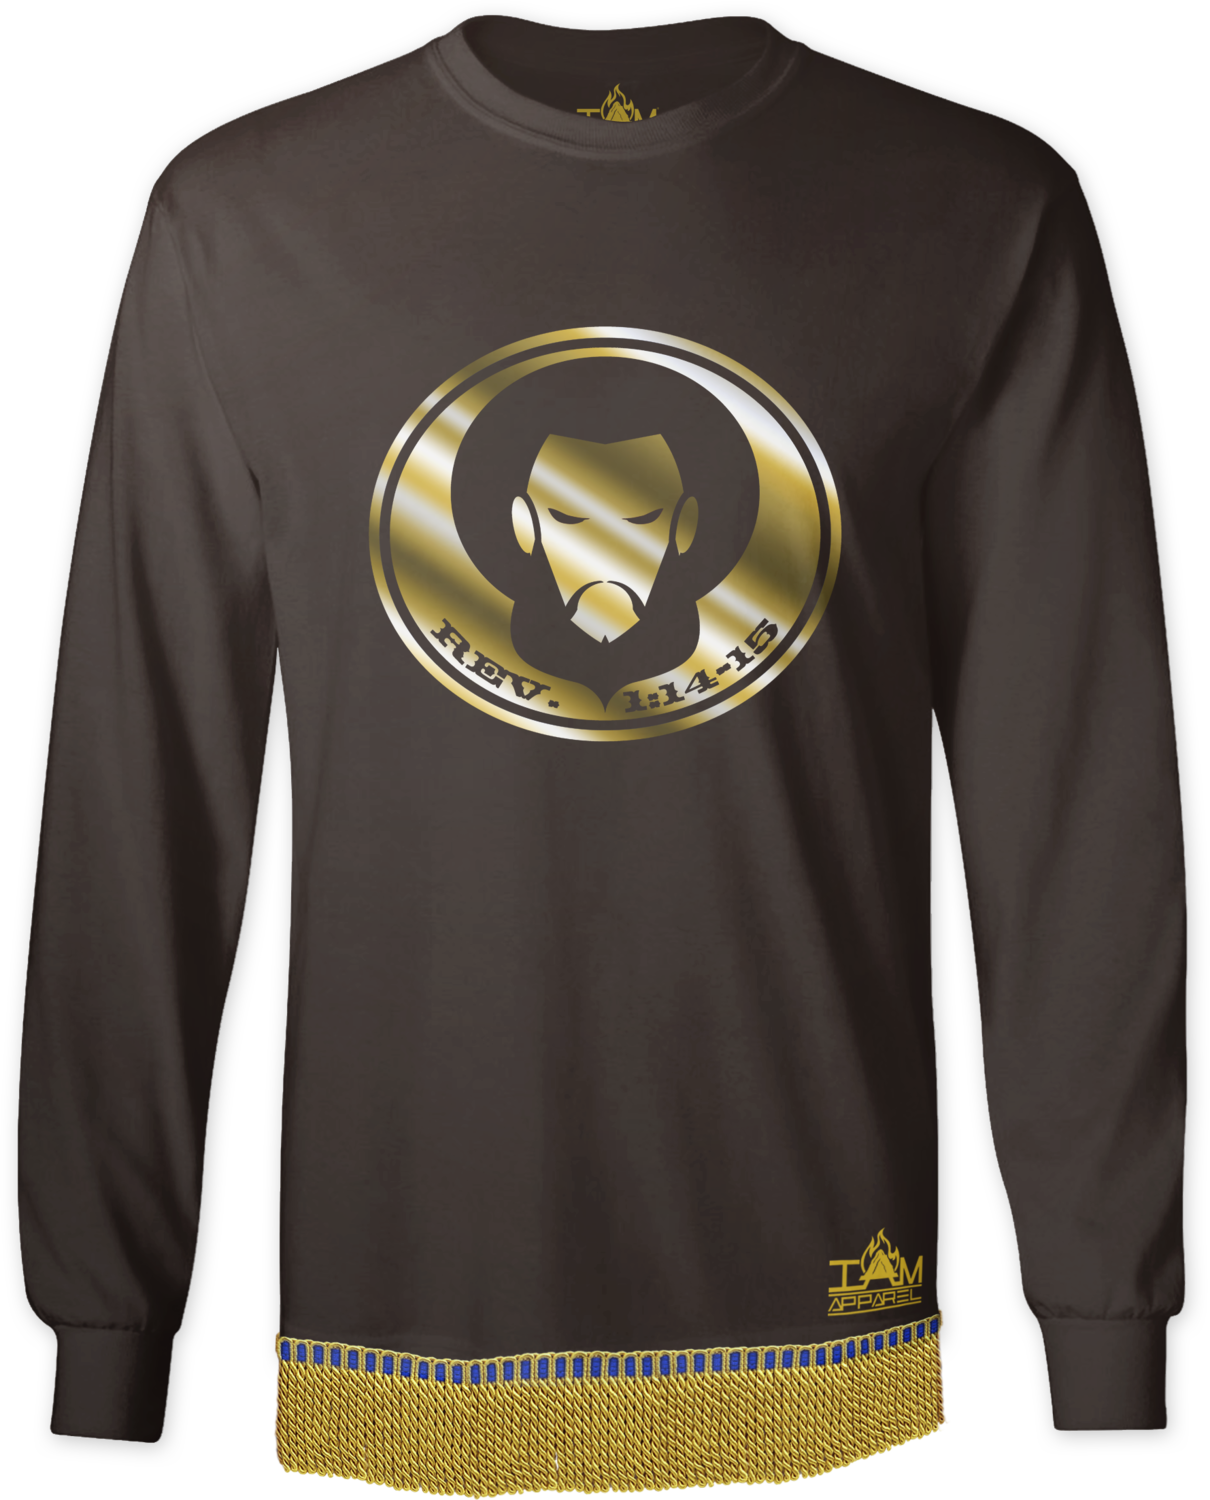 Men's GOLDEN SERIES Long Sleeved with image of Christ T-Shirt with fringe.